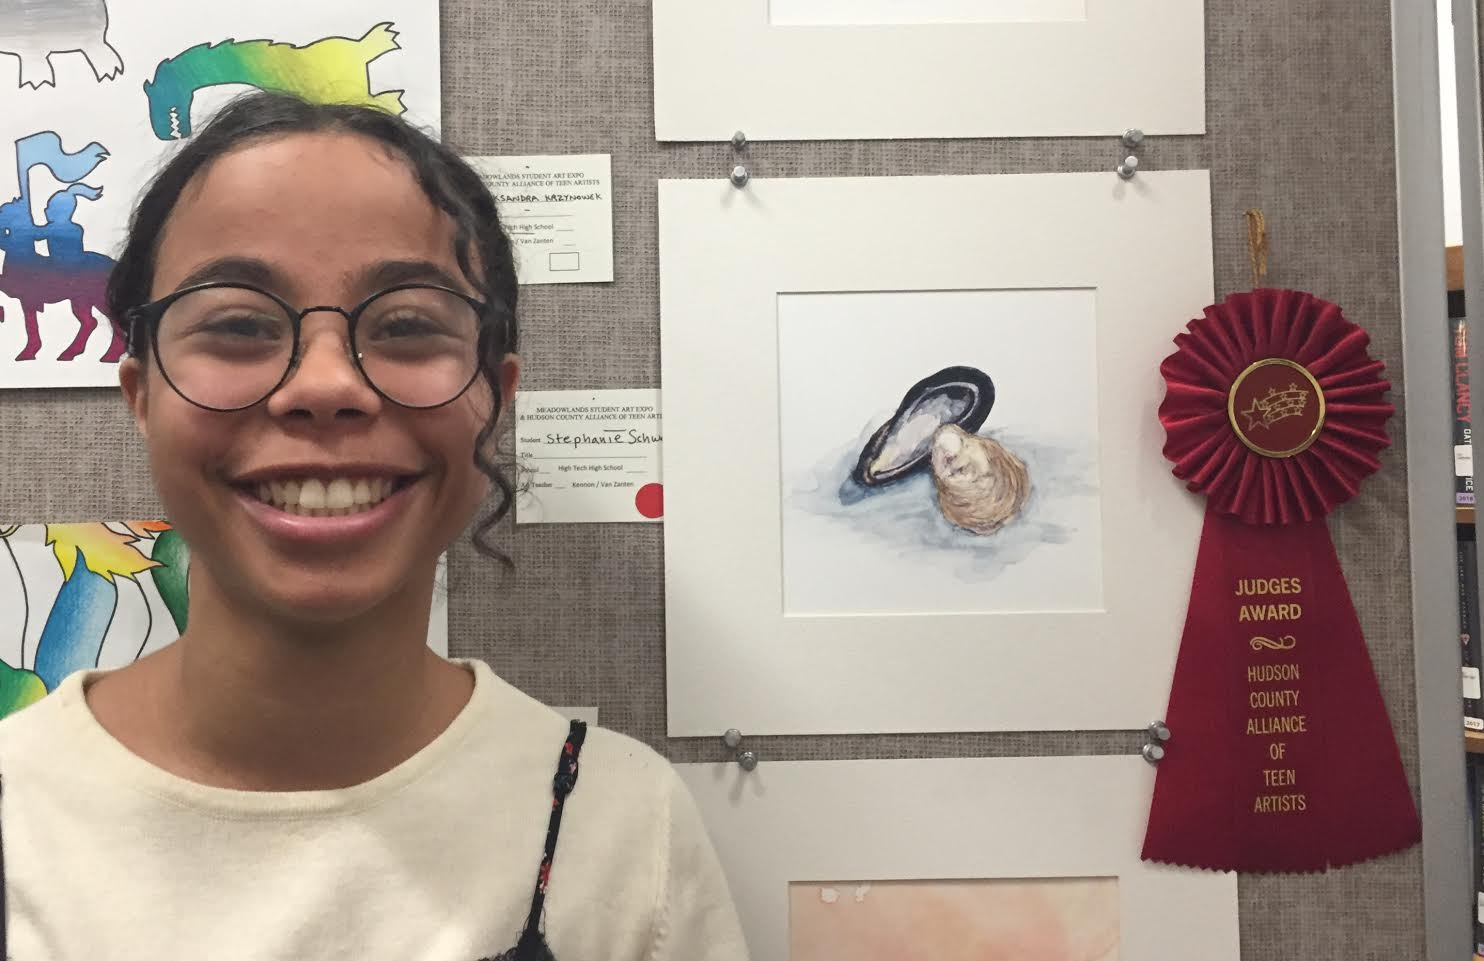 hths-Stephanie-Schwartz-Judges-Award-Art-Expo-2019